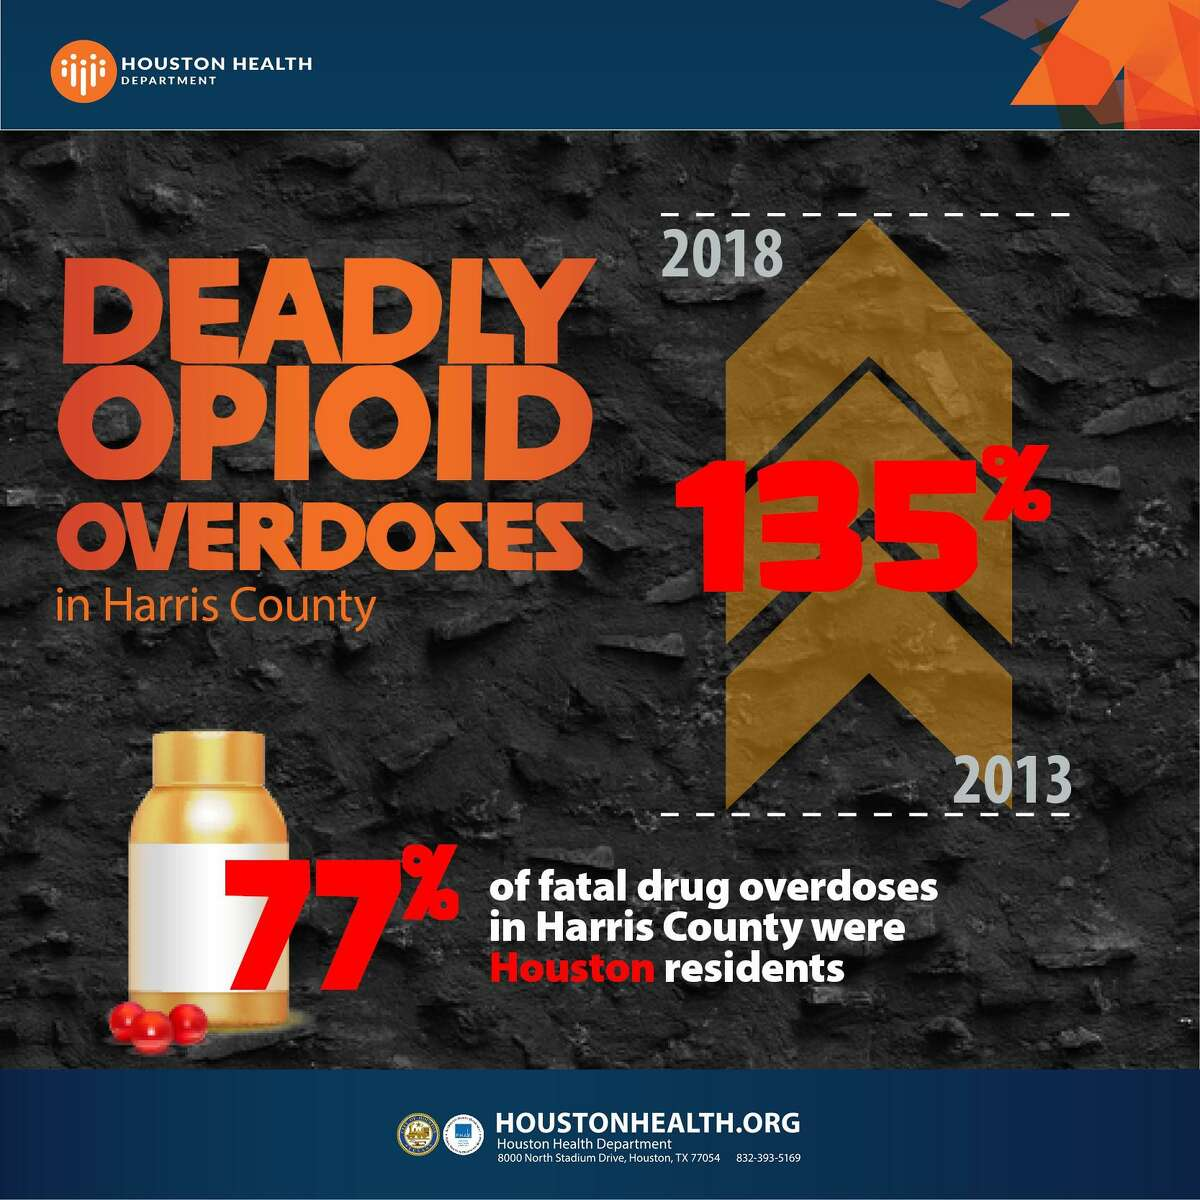 HCA Houston Healthcare West will serve as a collection point for individuals to safely and anonymously dispose of unused or expired opioid painkillers on Saturday, Sept. 21, from 9 a.m. to 1 p.m. as part of the hospital's commitment to curb the misuse and addiction to prescription pain relievers.